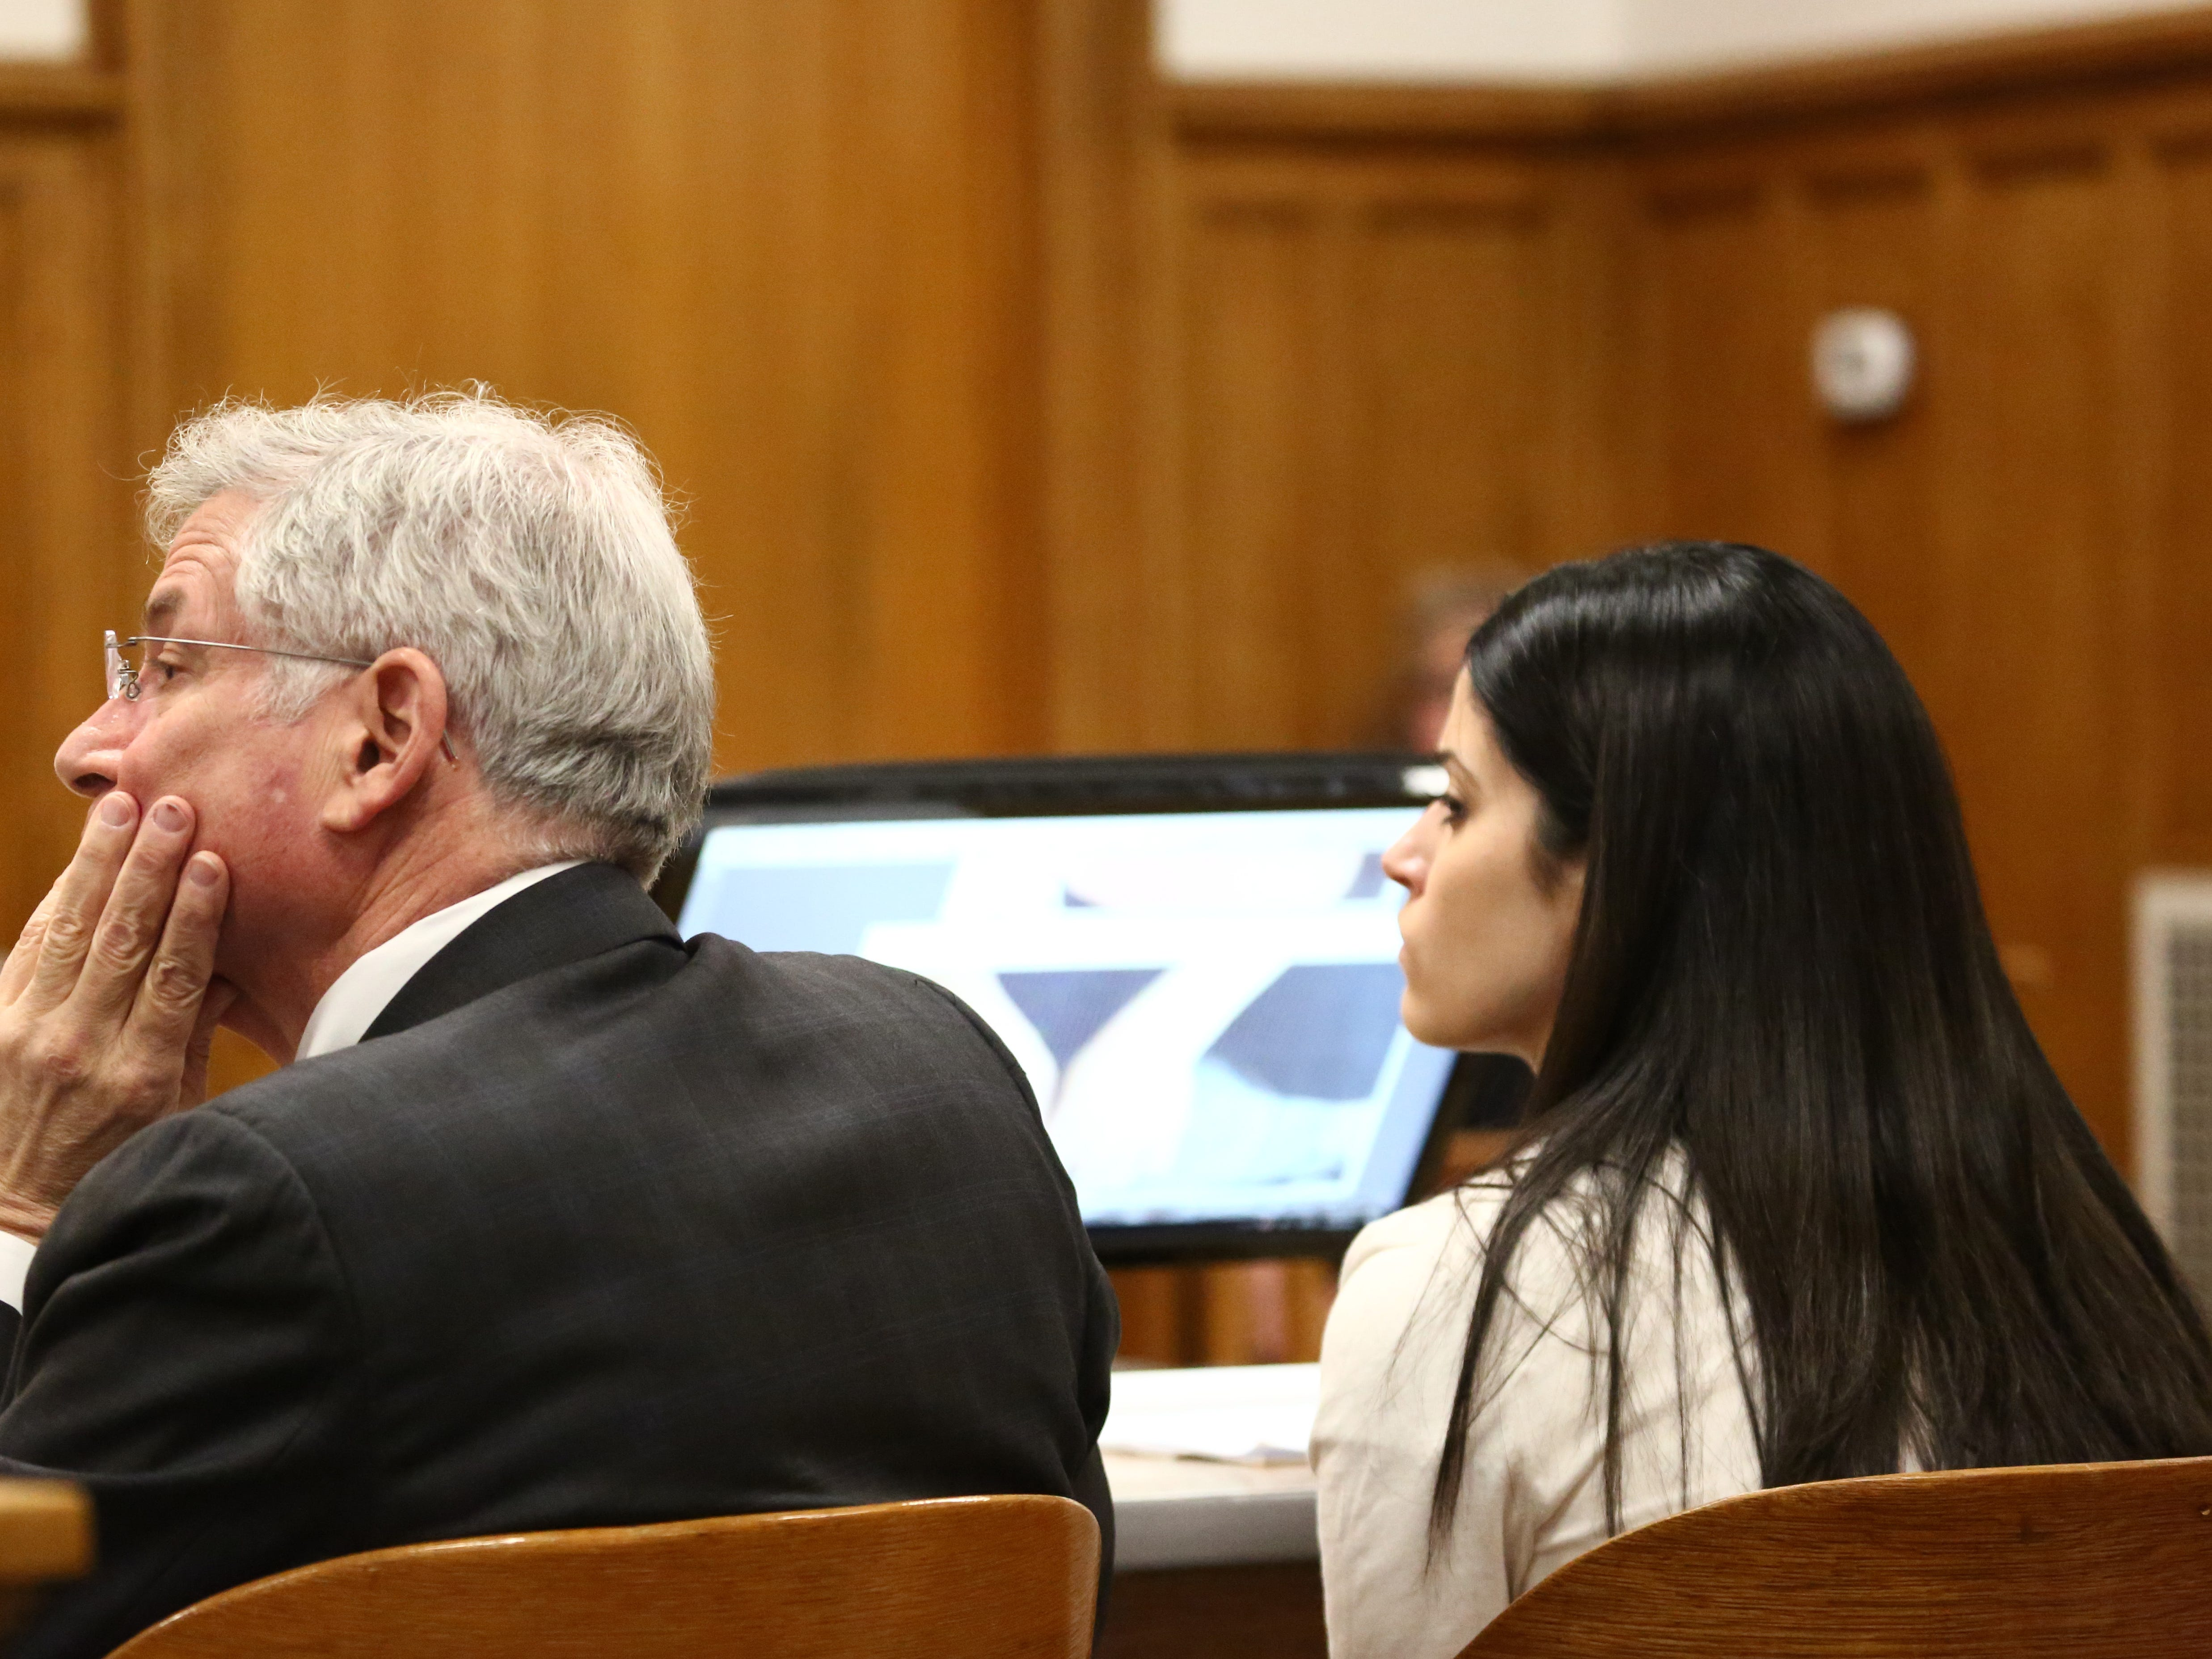 Nicole Addimando with part of her legal team, Benjamin Ostrer, while her other attorney John Ingrassia makes his closing arguments in Dutchess County Court on April 8, 2019.